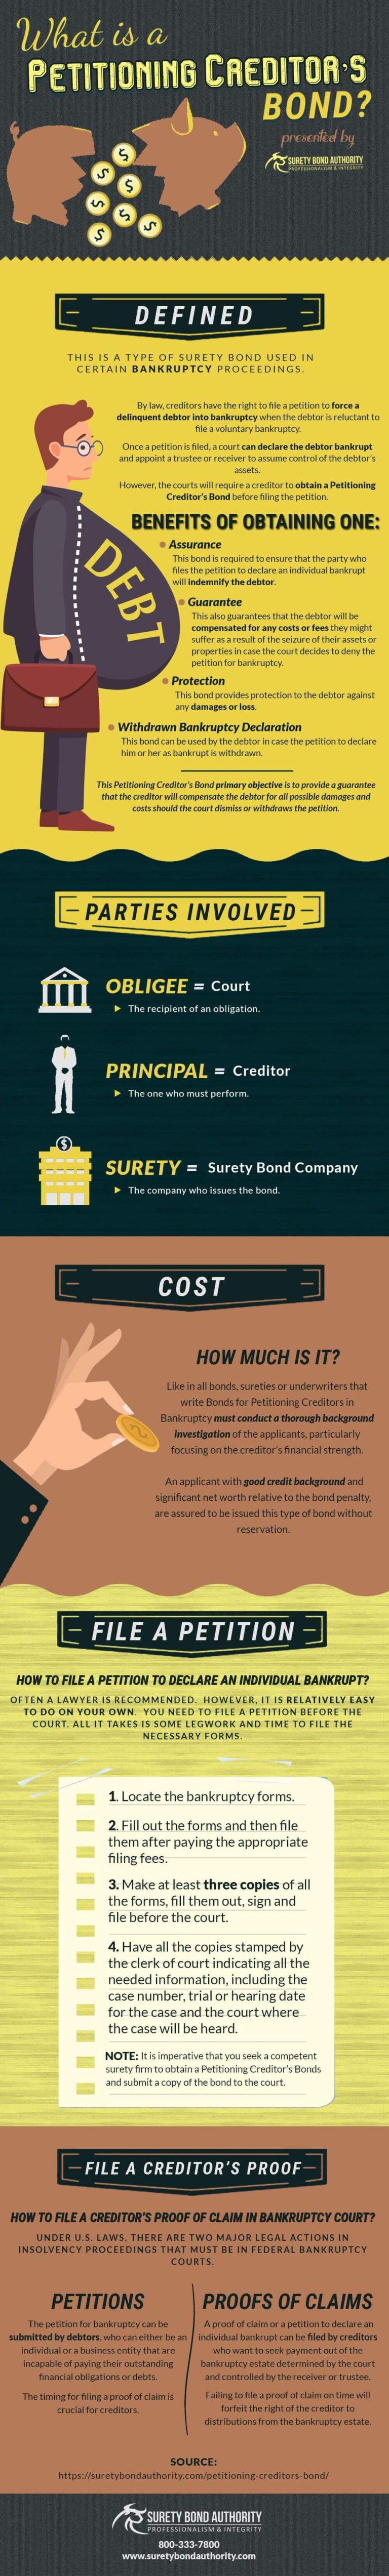 Petitioning Creditor's Bond Infographic